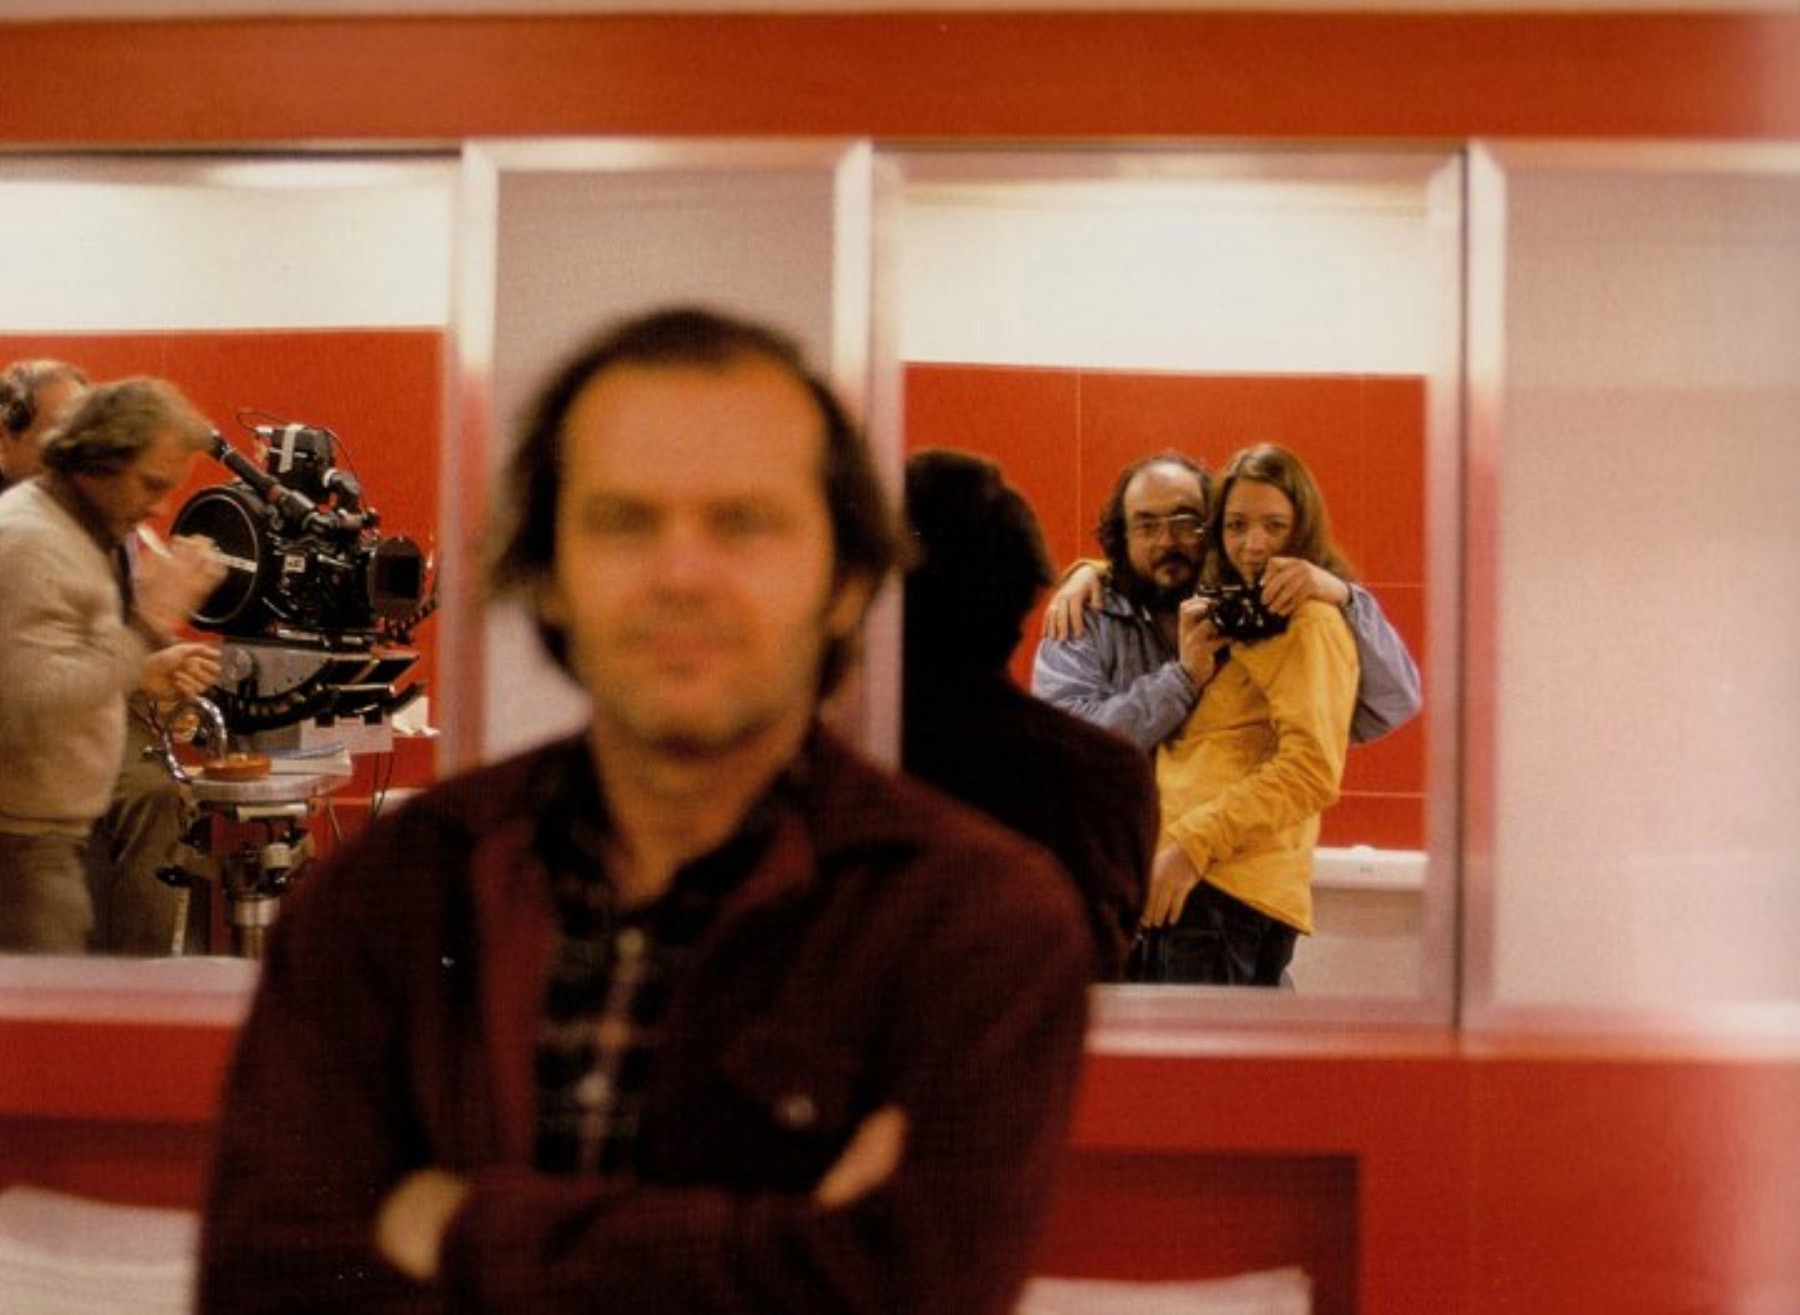 kubrick-self-portrait-with-daughter-vivian-and-camera-on-set-of-the-shining.jpg